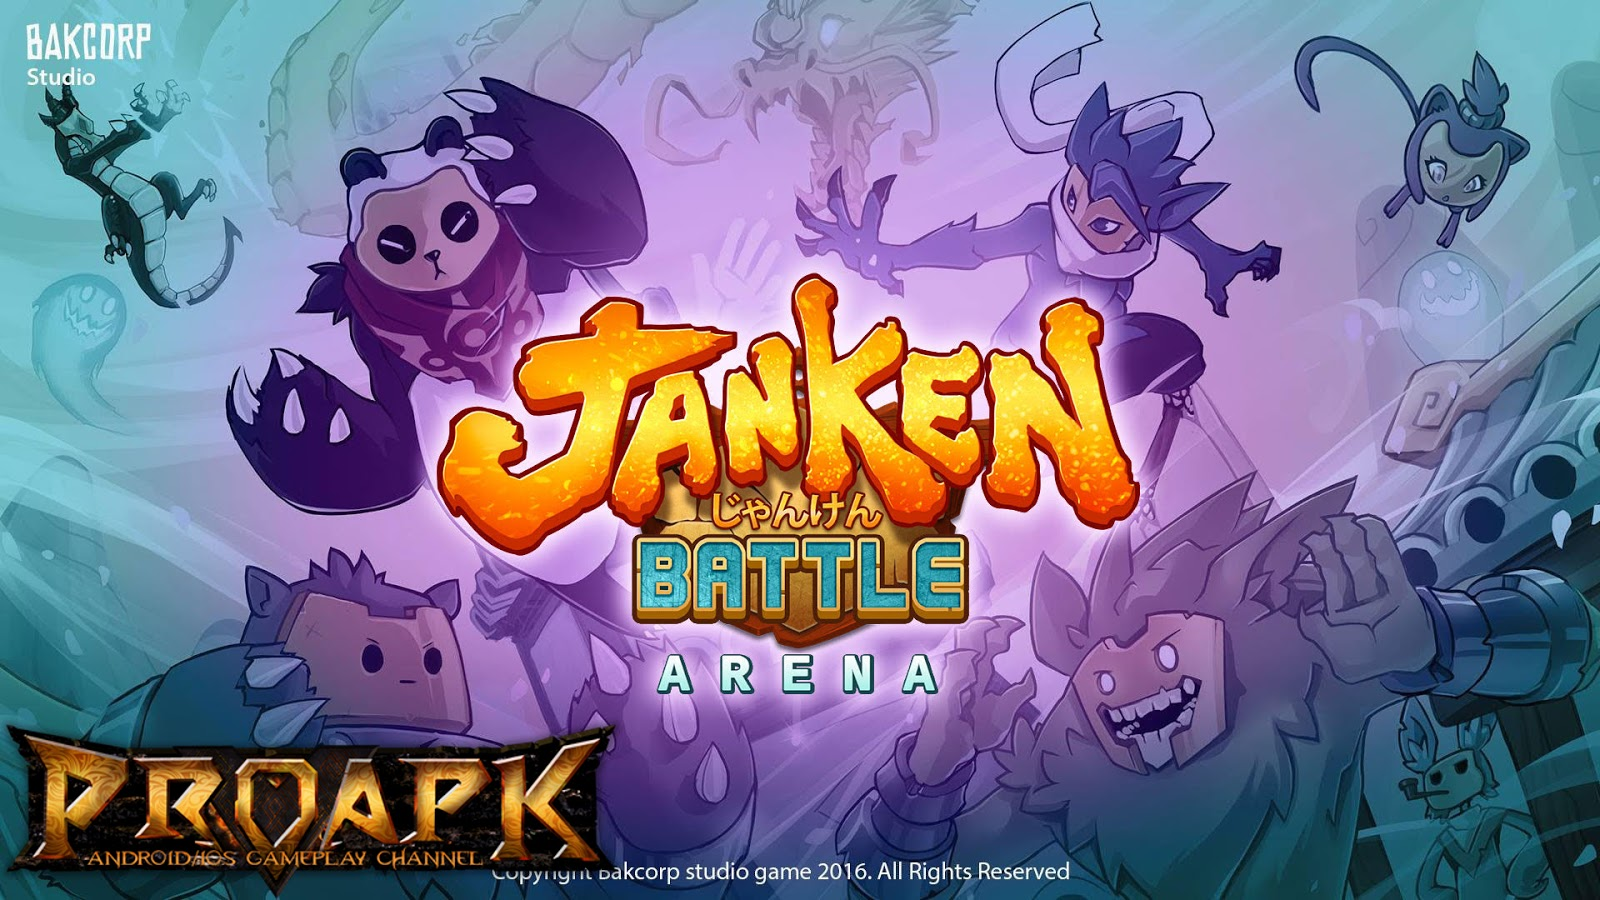 JanKen Battle Arena